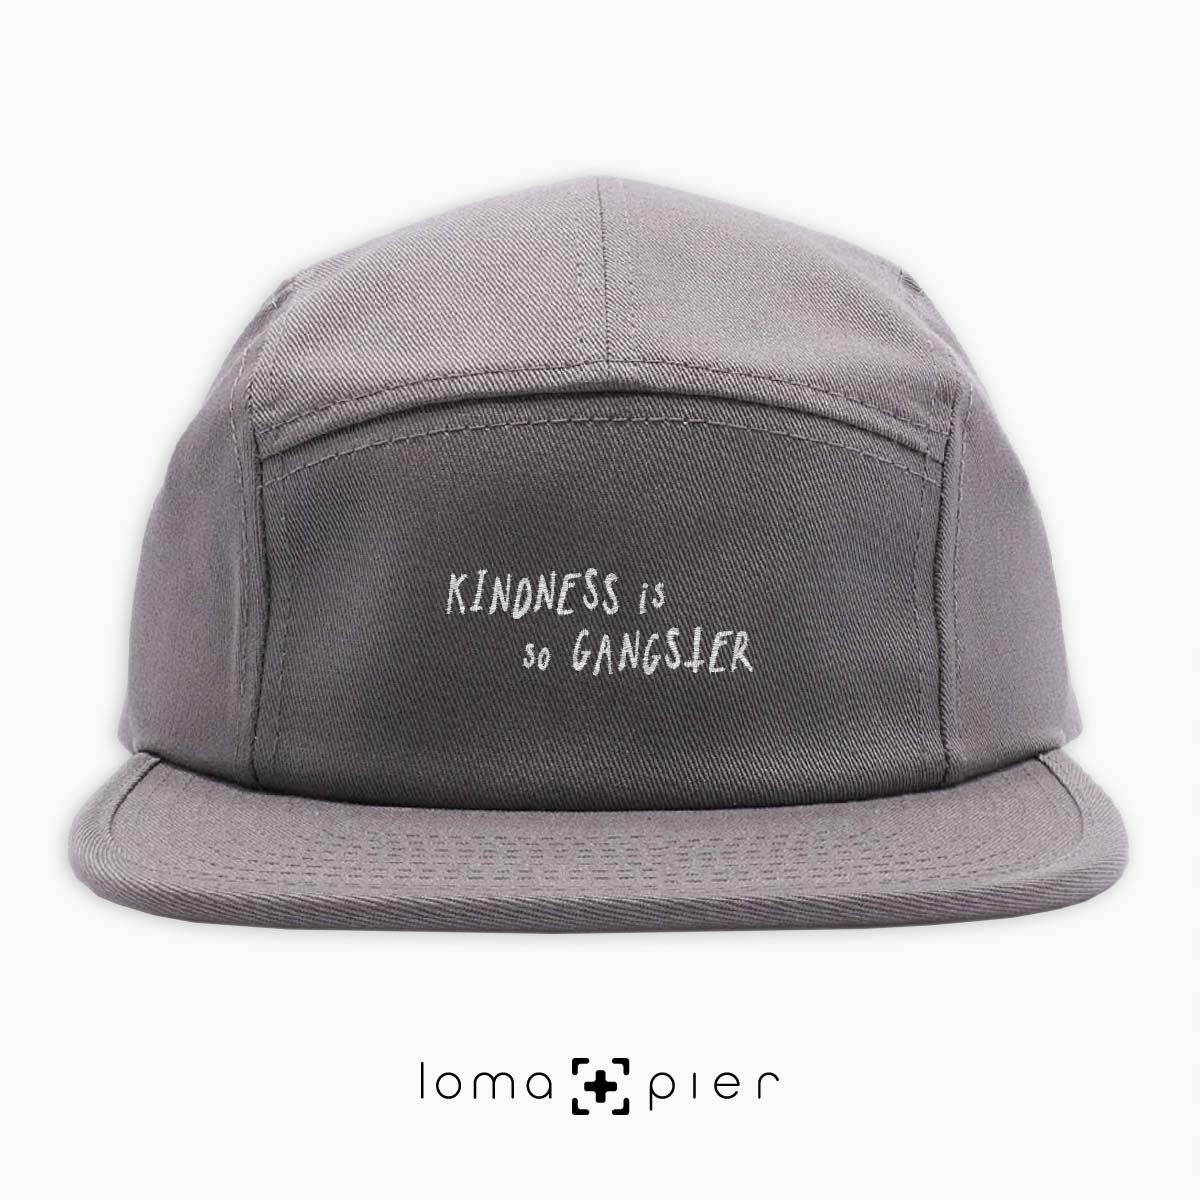 KINDNESS IS SO GANGSTER typography embroidered on a grey cotton 5-panel hat with white thread by loma+pier hat store